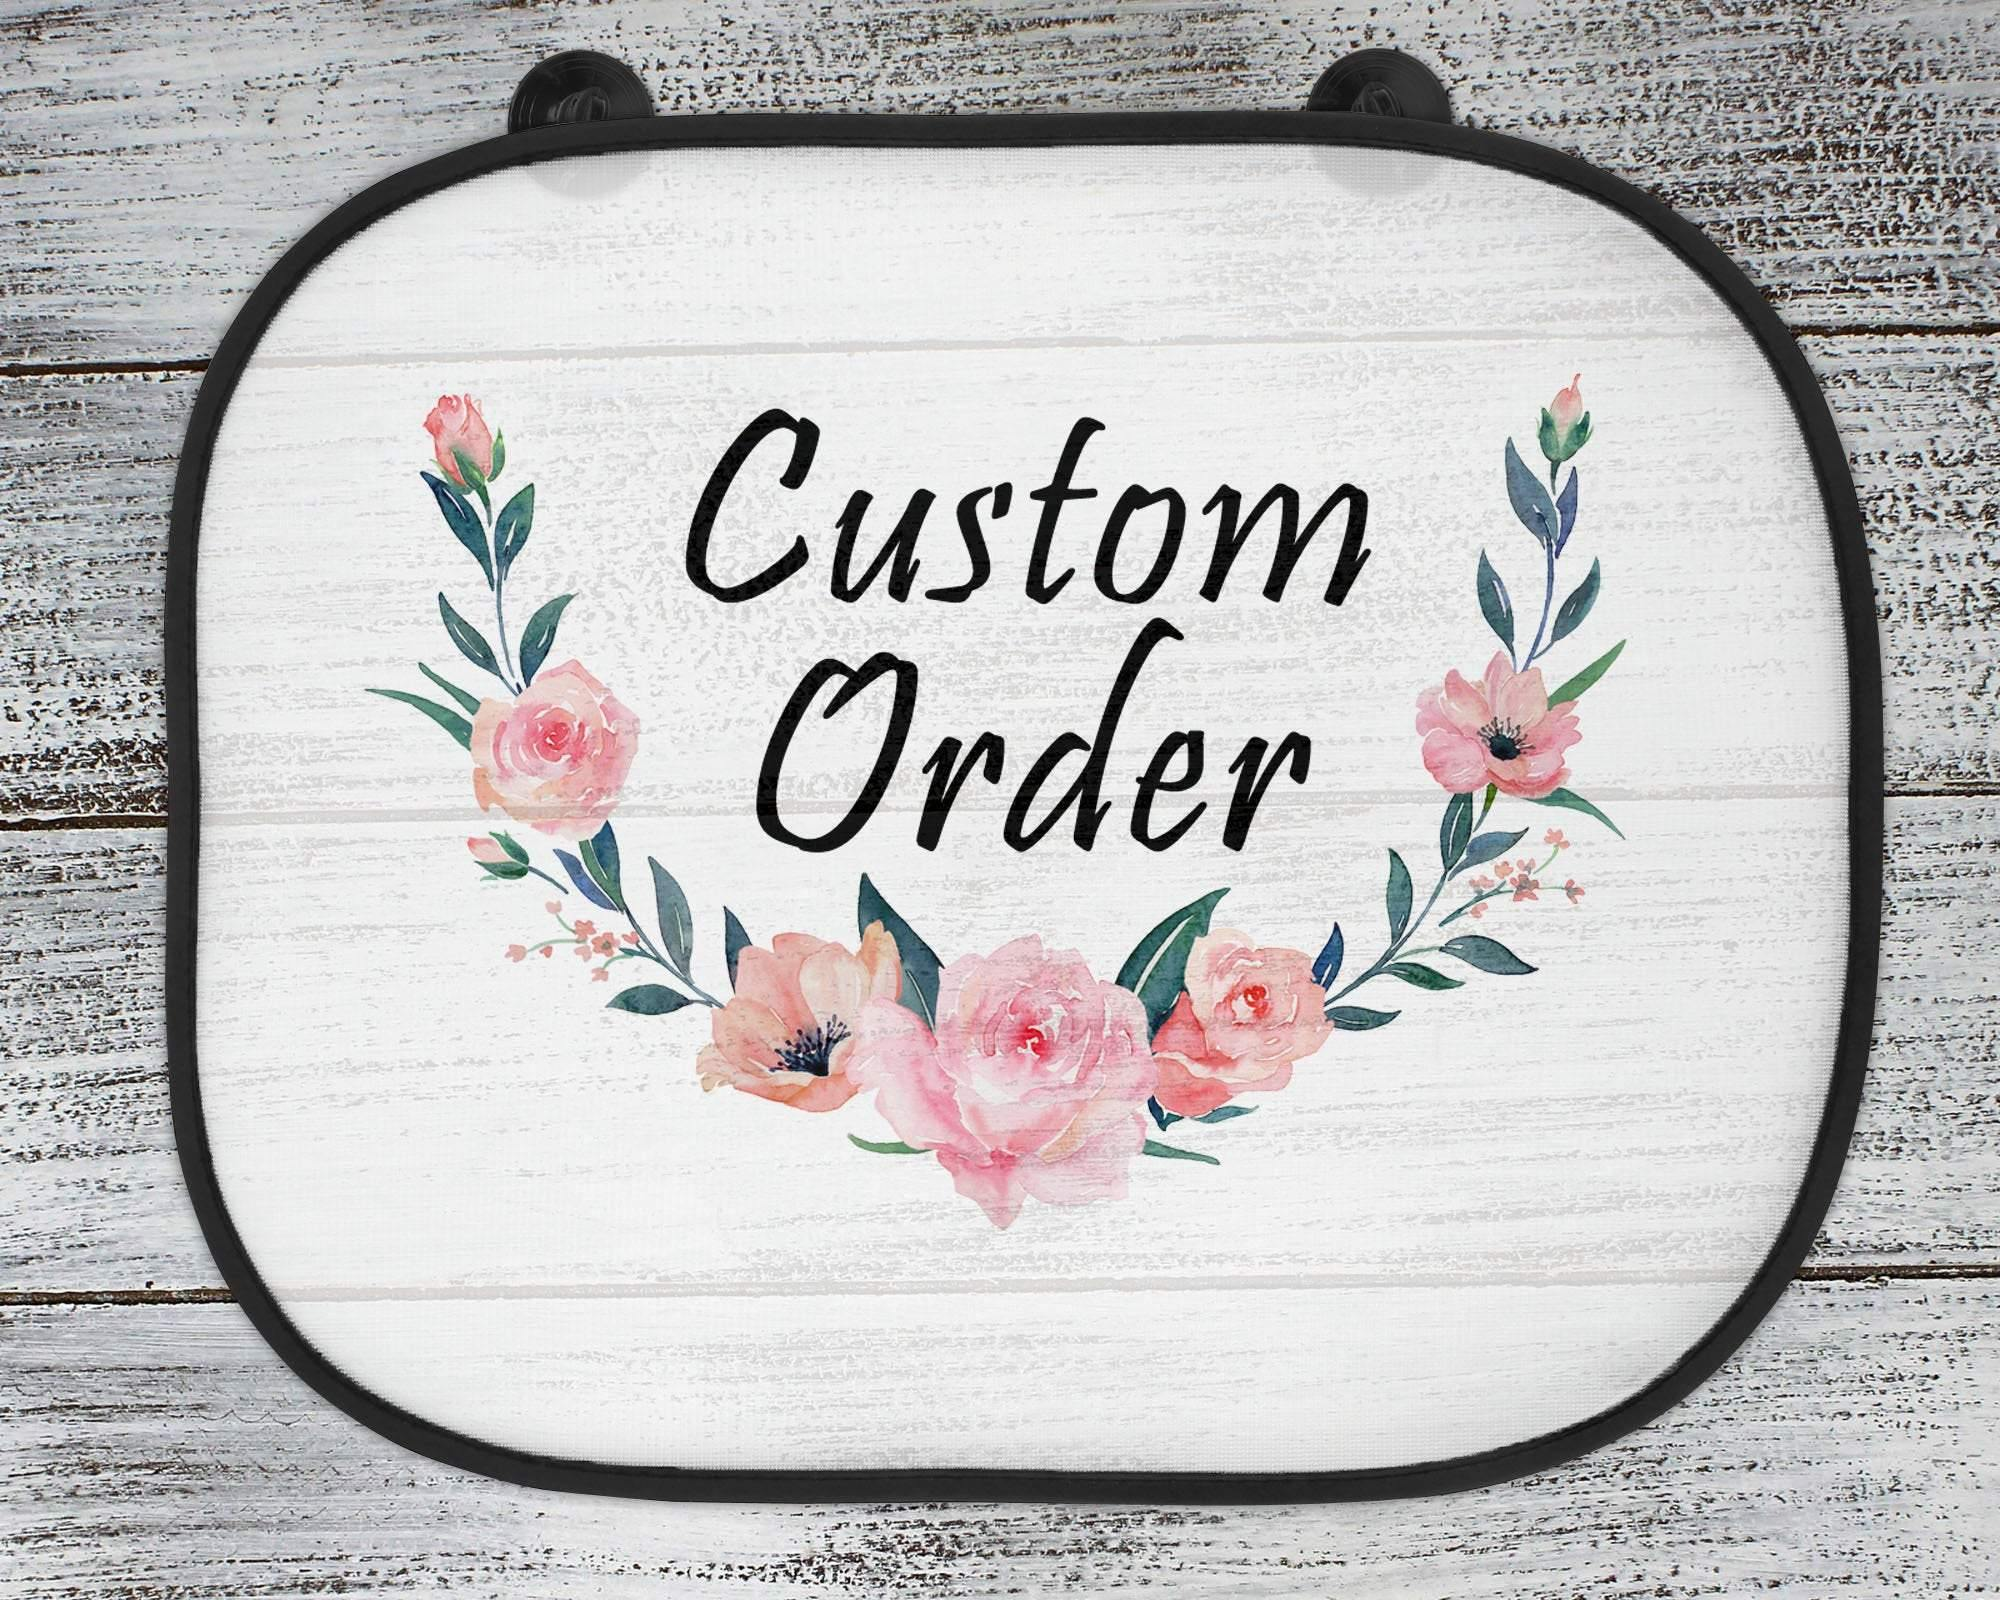 Car Accessories - Personalized Sun Shade | Custom Car Shade | Vehicle Shade | Custom Order - This & That Solutions